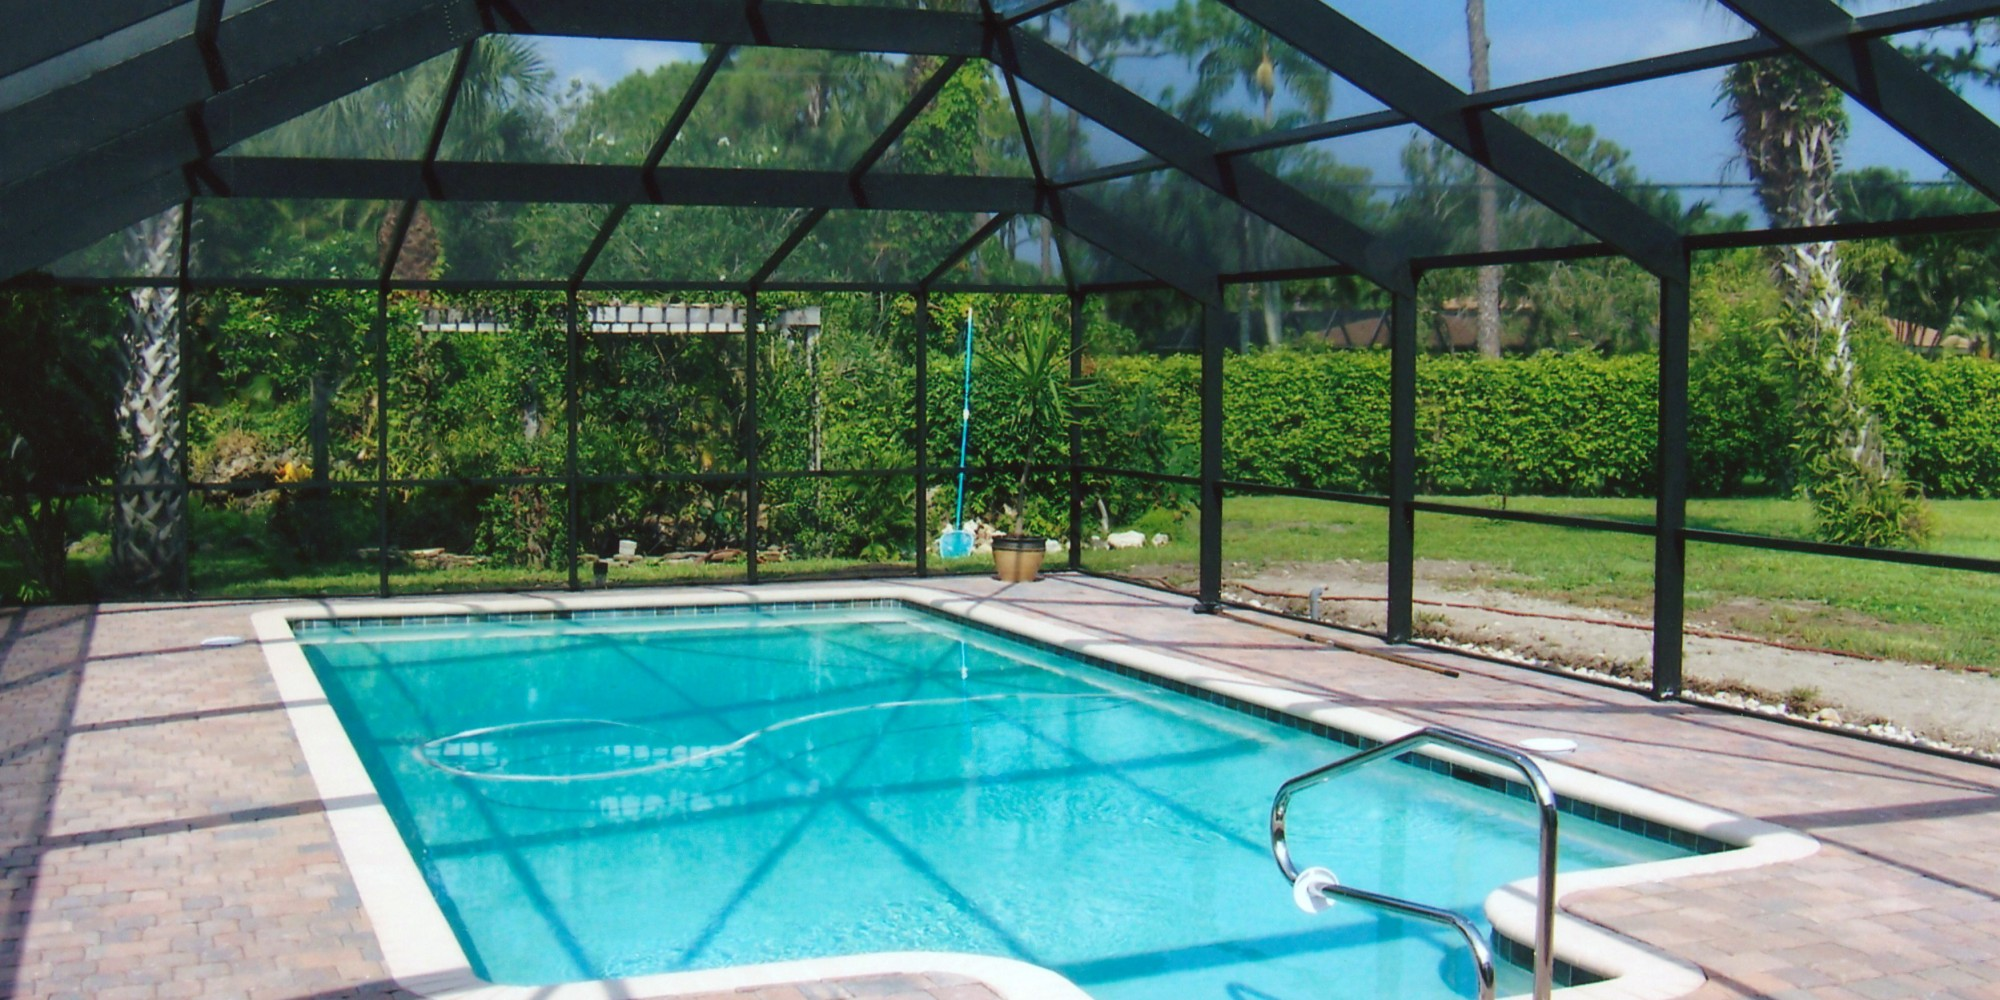 Seven star pools swimming pool renovations fort myers for Swimming pool renovations